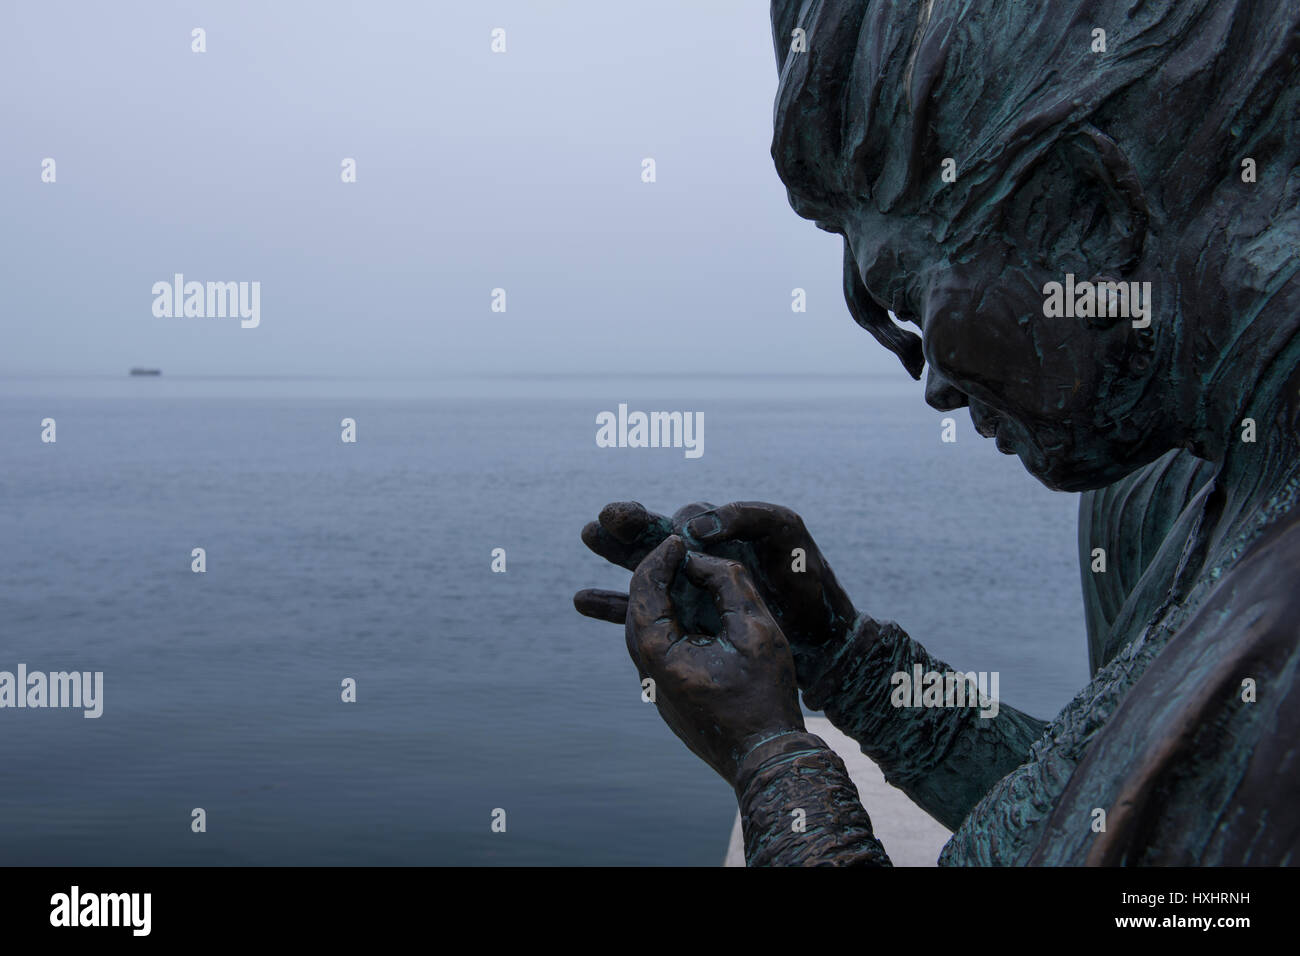 One of the two seamstresses ('Sartine') sewing on the Italian flag over the Gulf of Trieste. Sculpture by - Stock Image